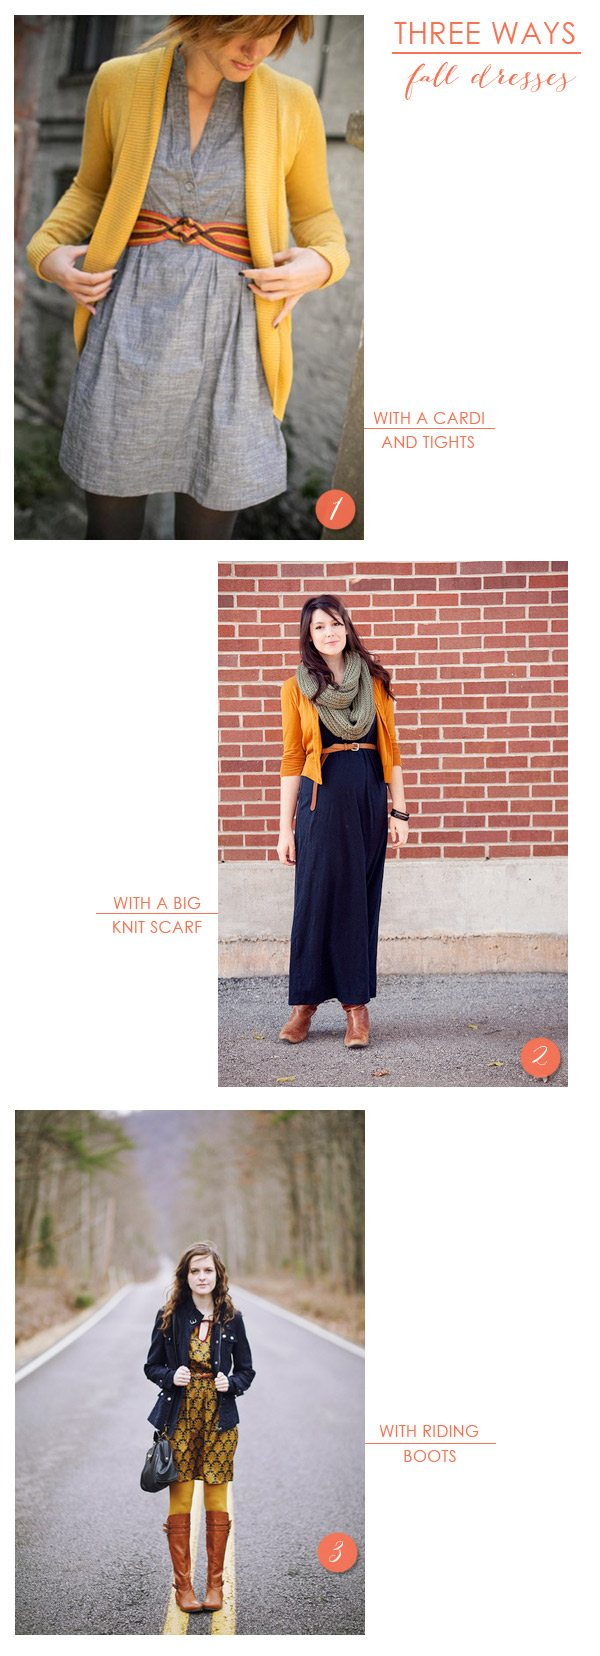 3 Ways to Style a Dress for Fall